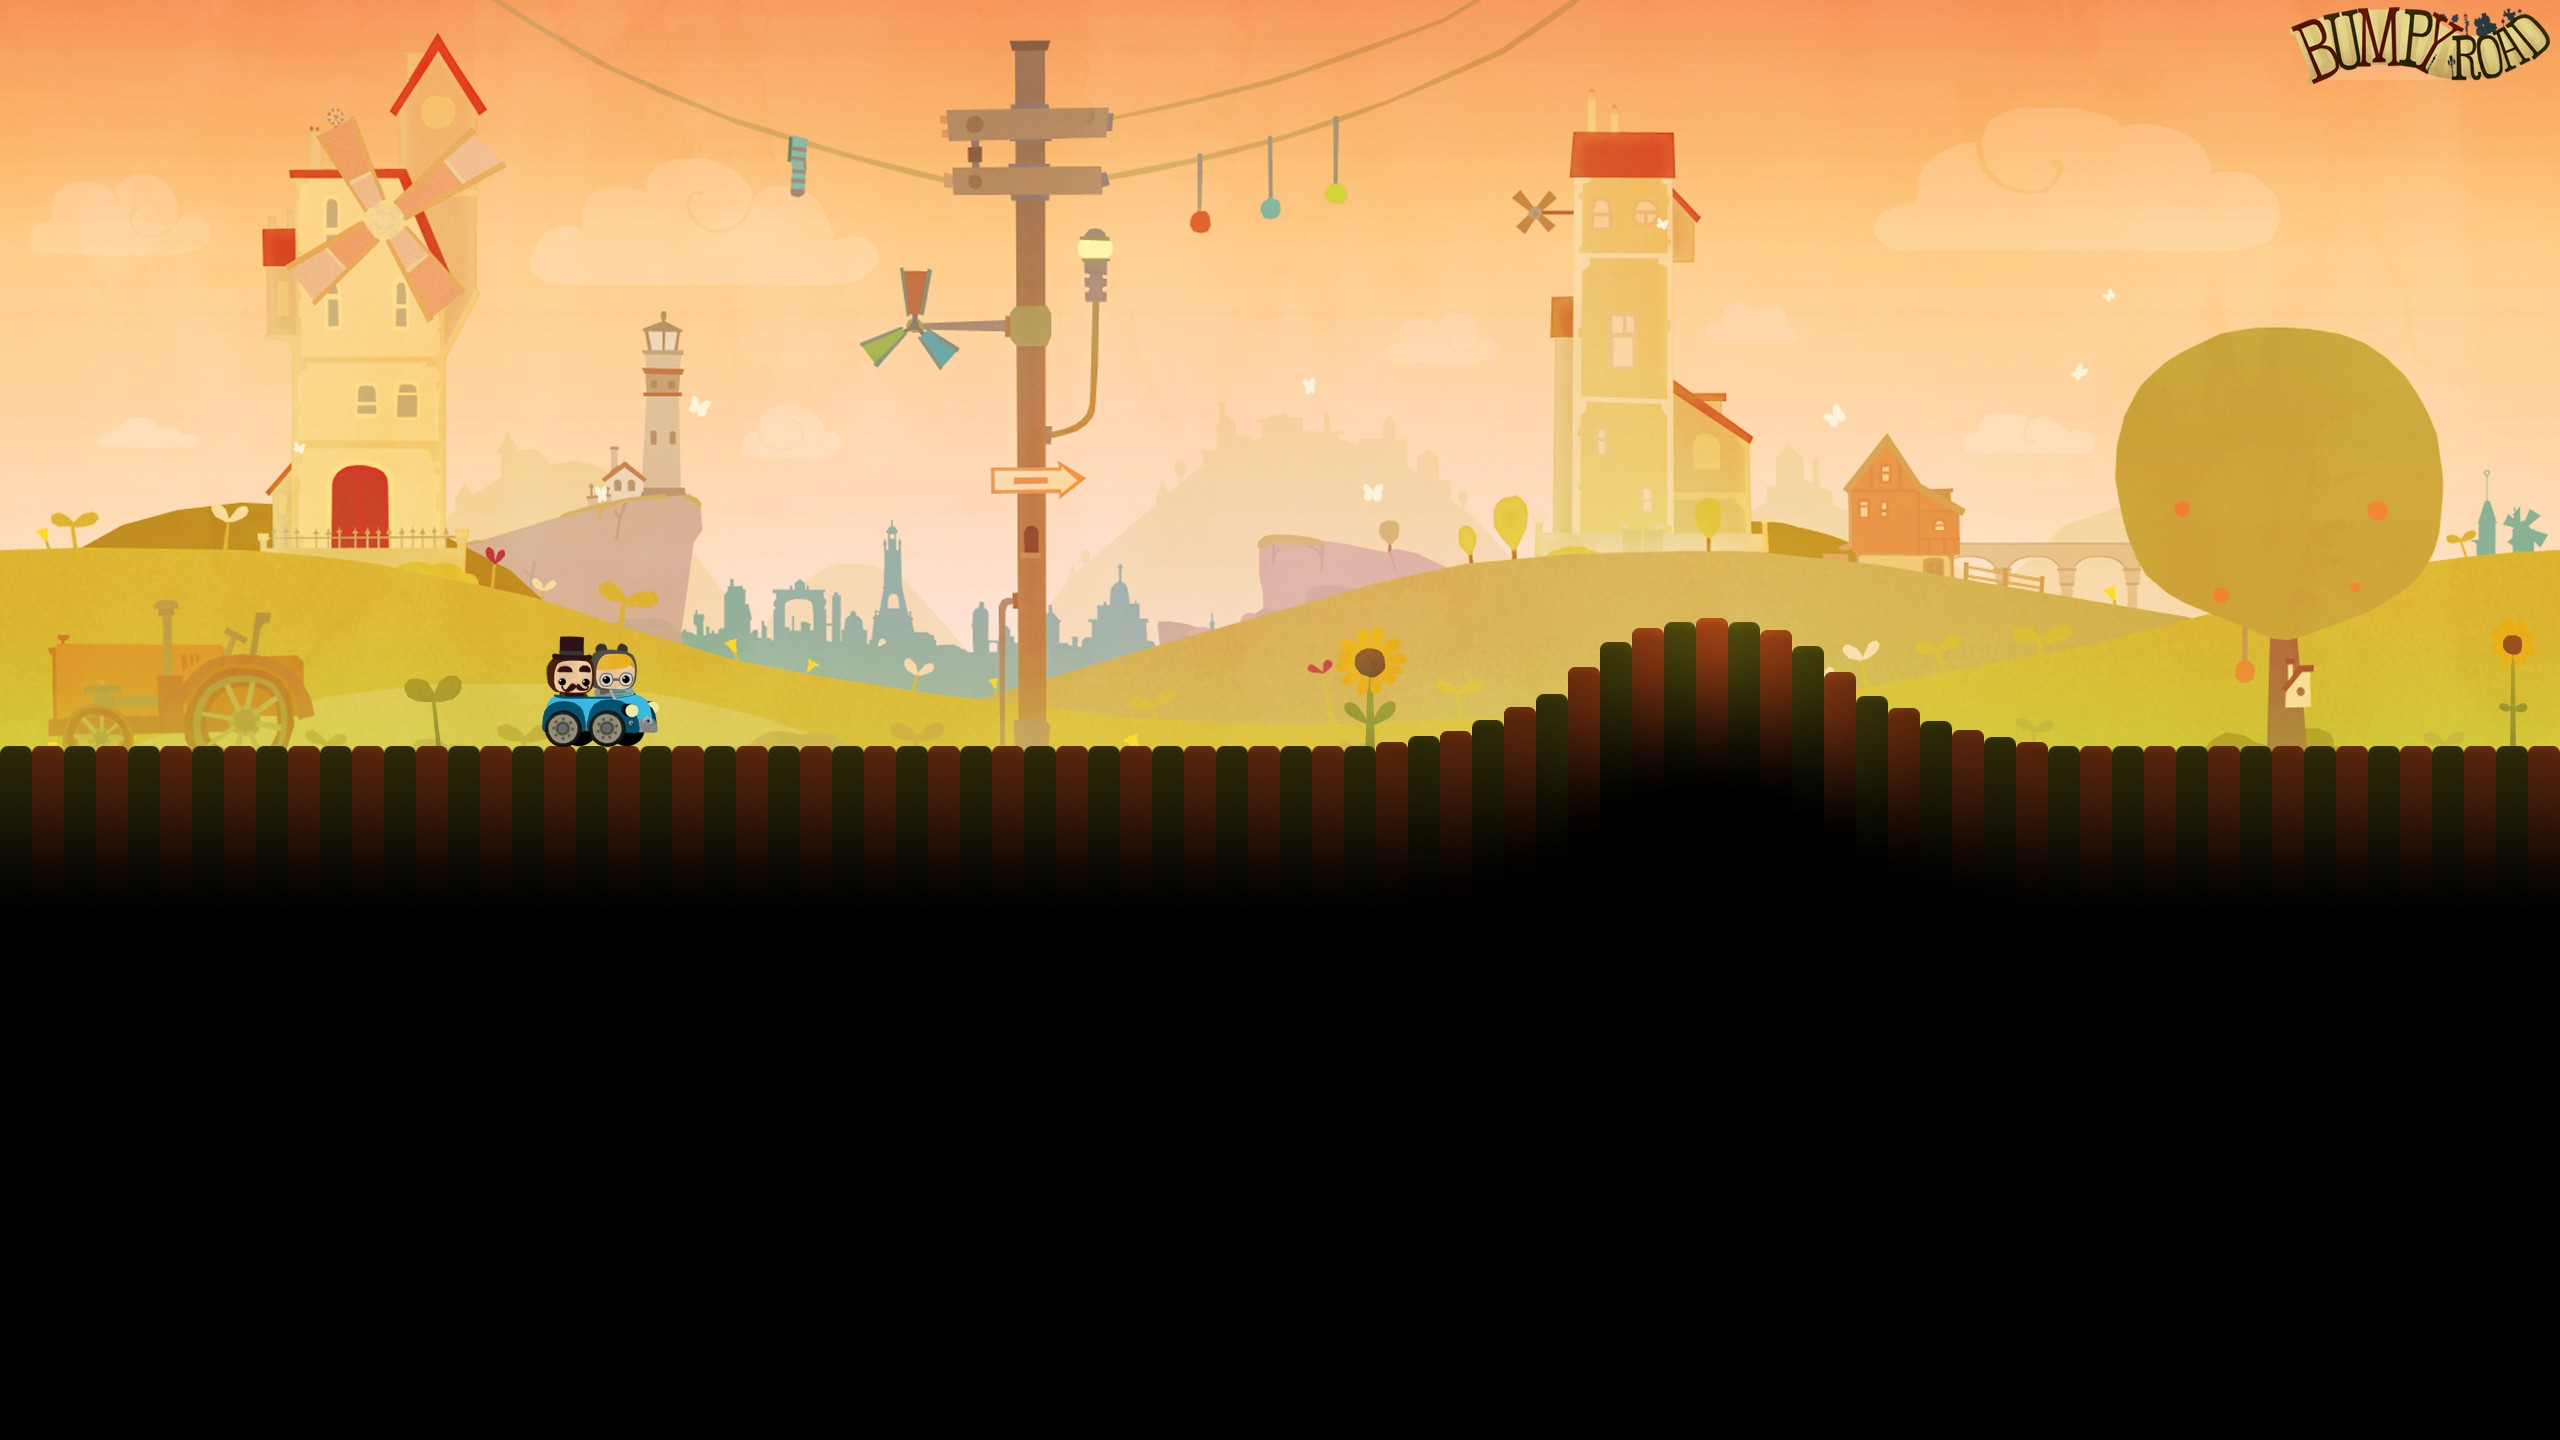 Video games roads pixel art wallpaper | 2560x1440 | 73413 ...